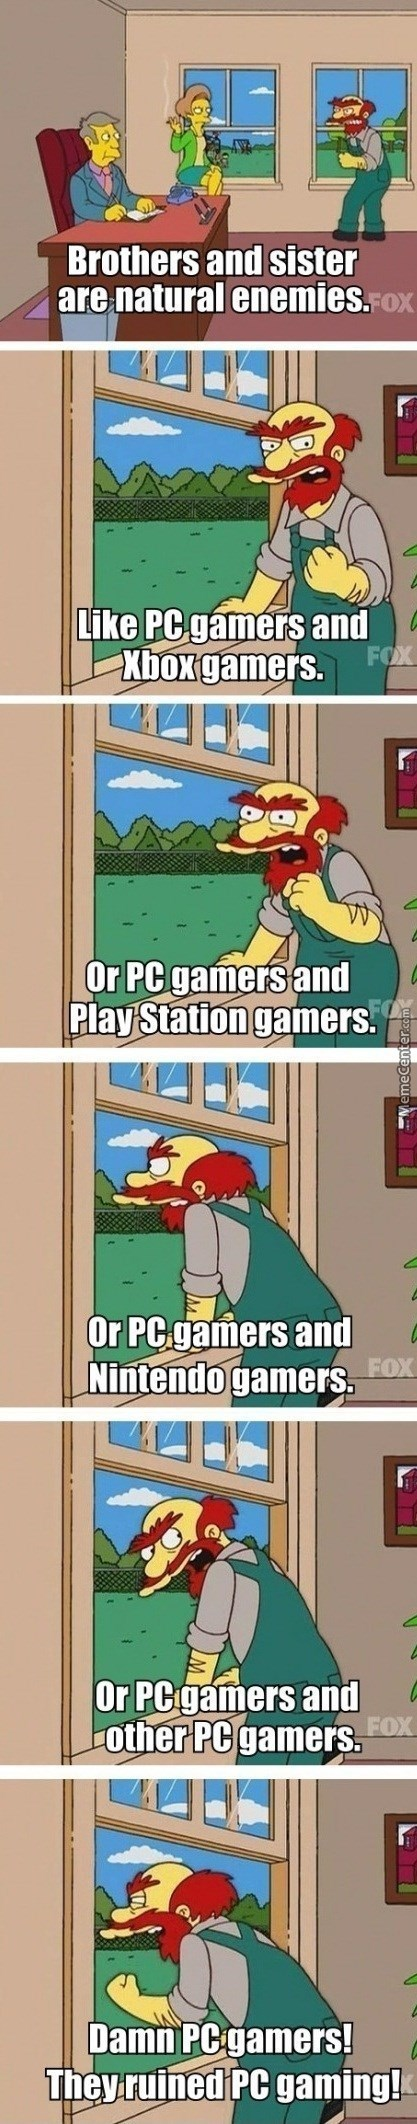 Pc Gamers Make Enemies For Life In The Name Of Gaben